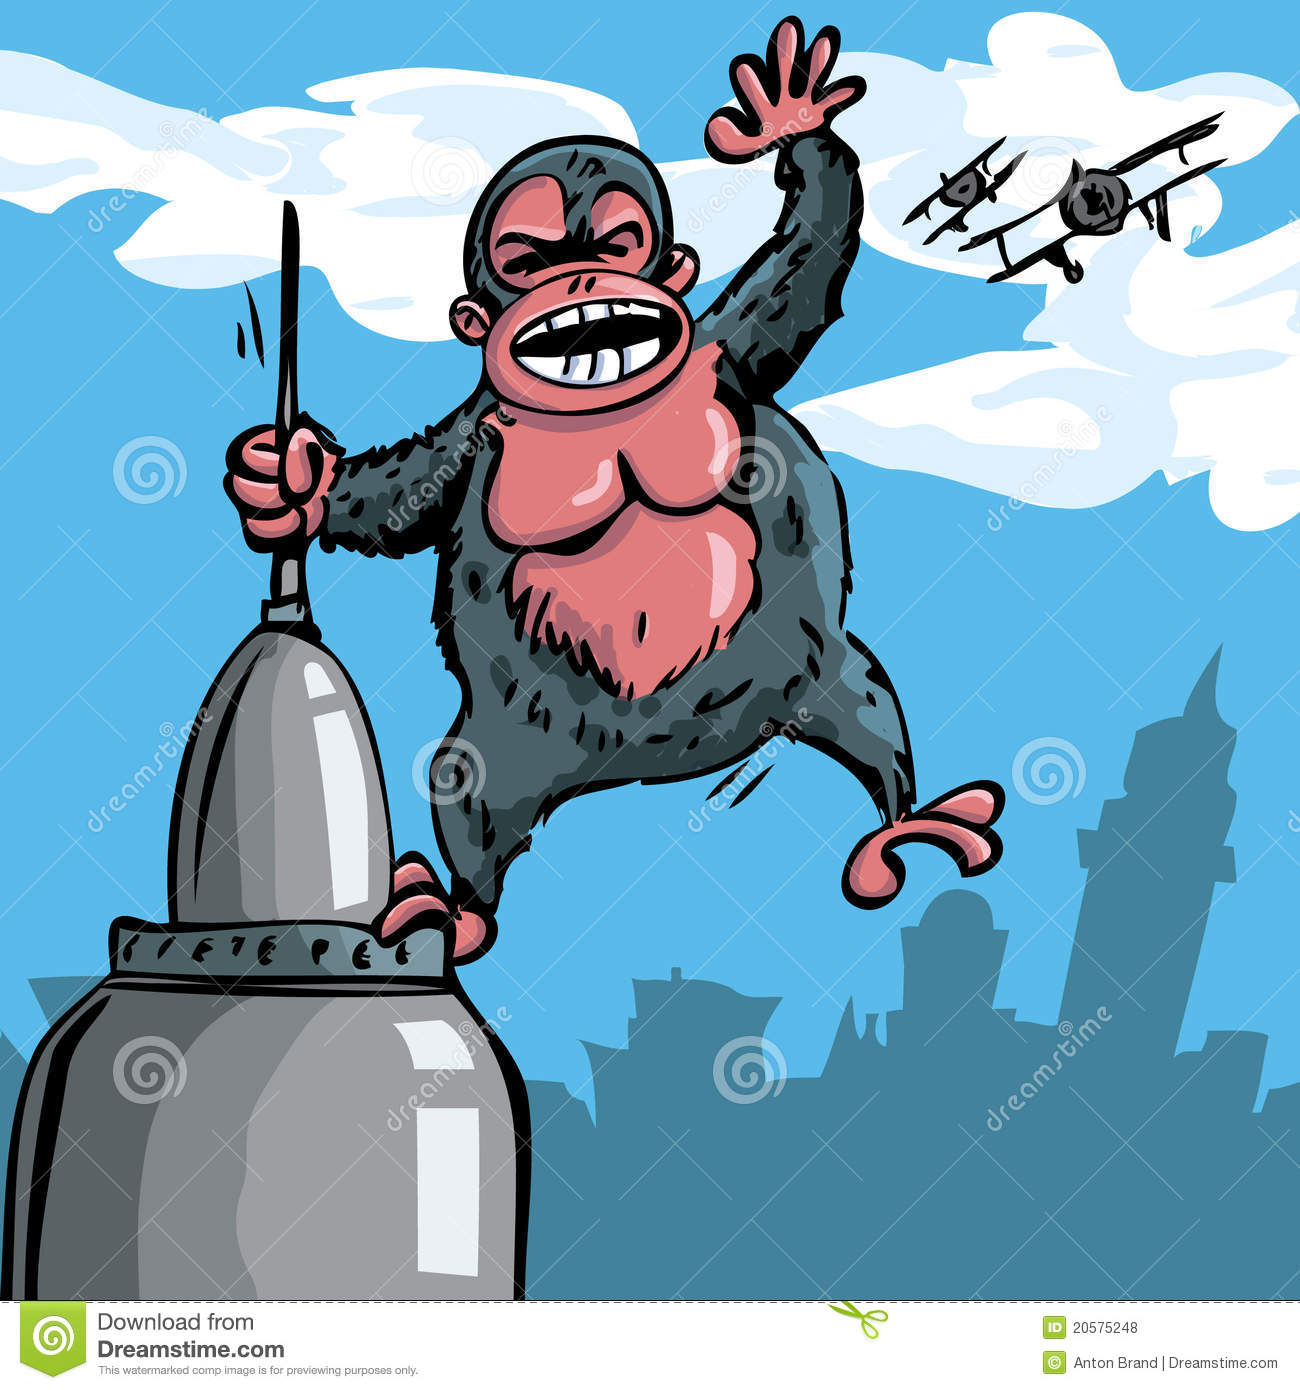 Cartoon King Kong Hanging On A Skyscraper Royalty Free ...